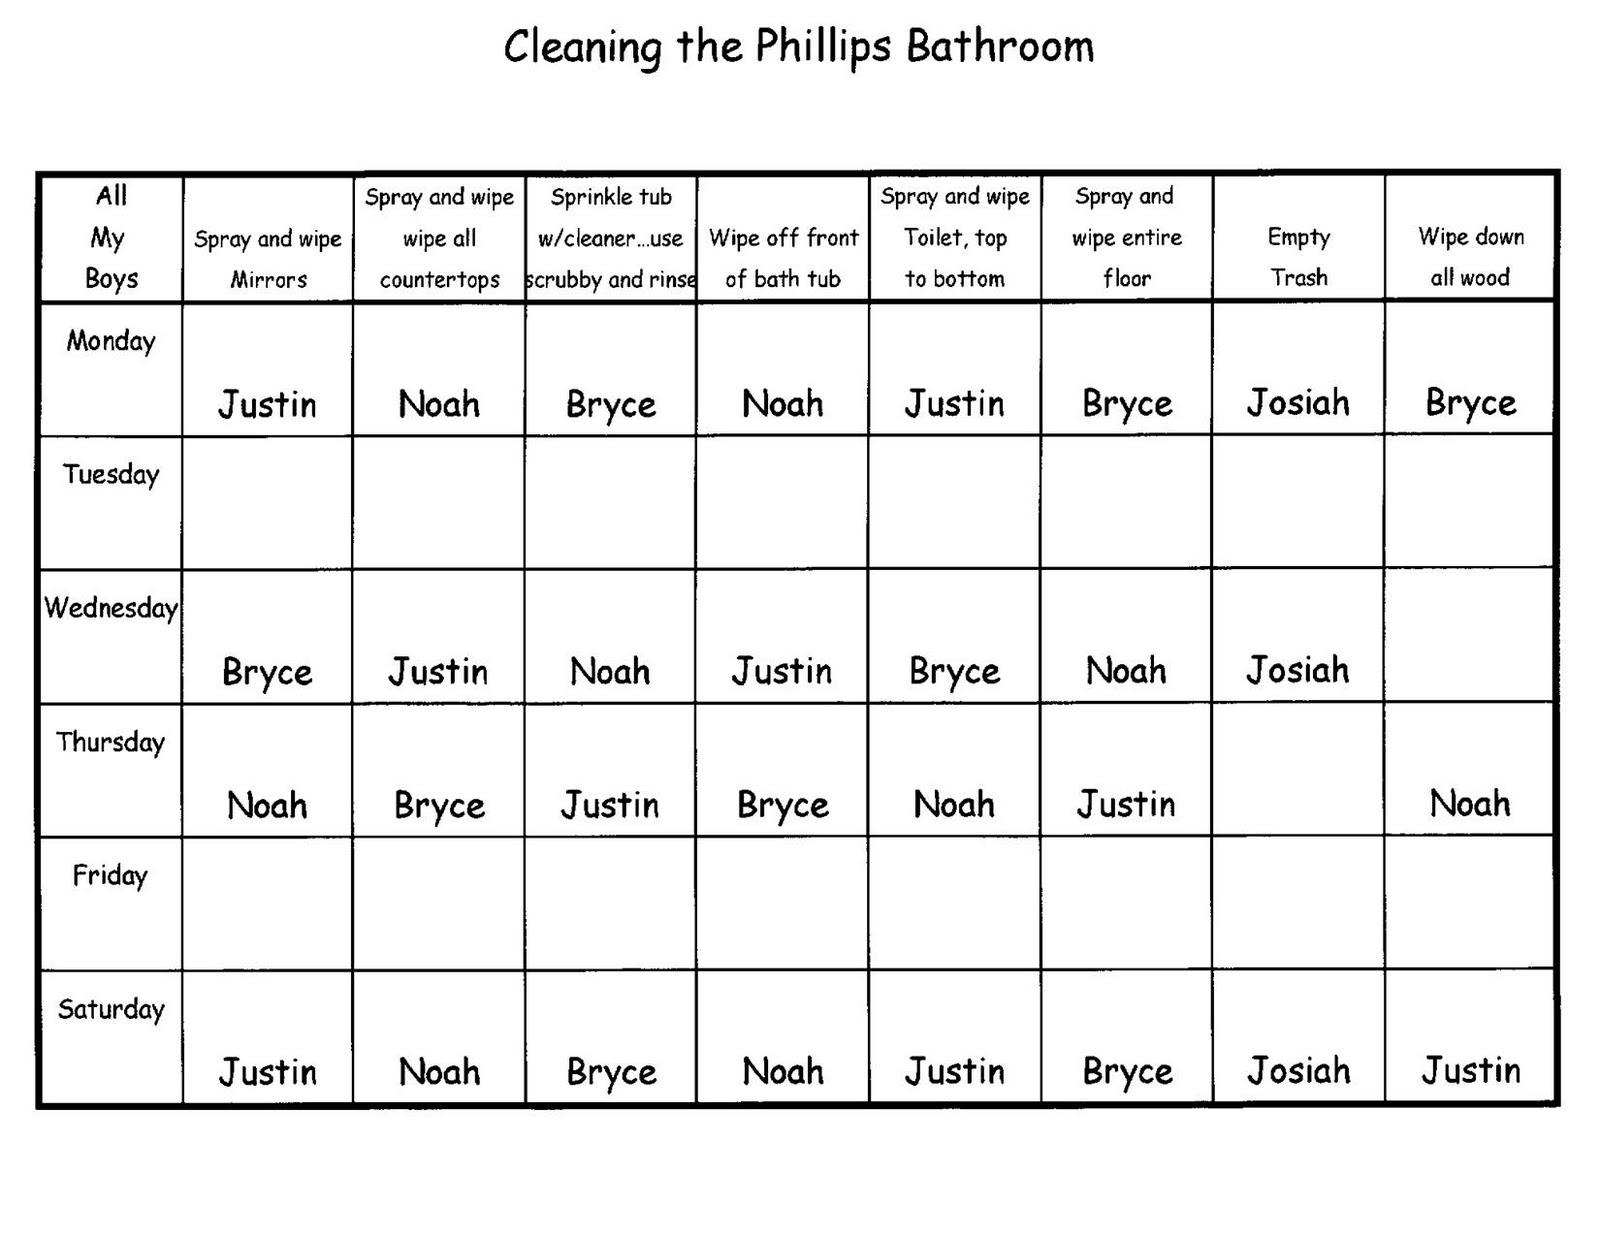 Free Restroom Cleaning Log Best Images Of Chart  Public Restroom Cleaning  Log Related Keywords Suggestions. Bathroom Cleaning Logs